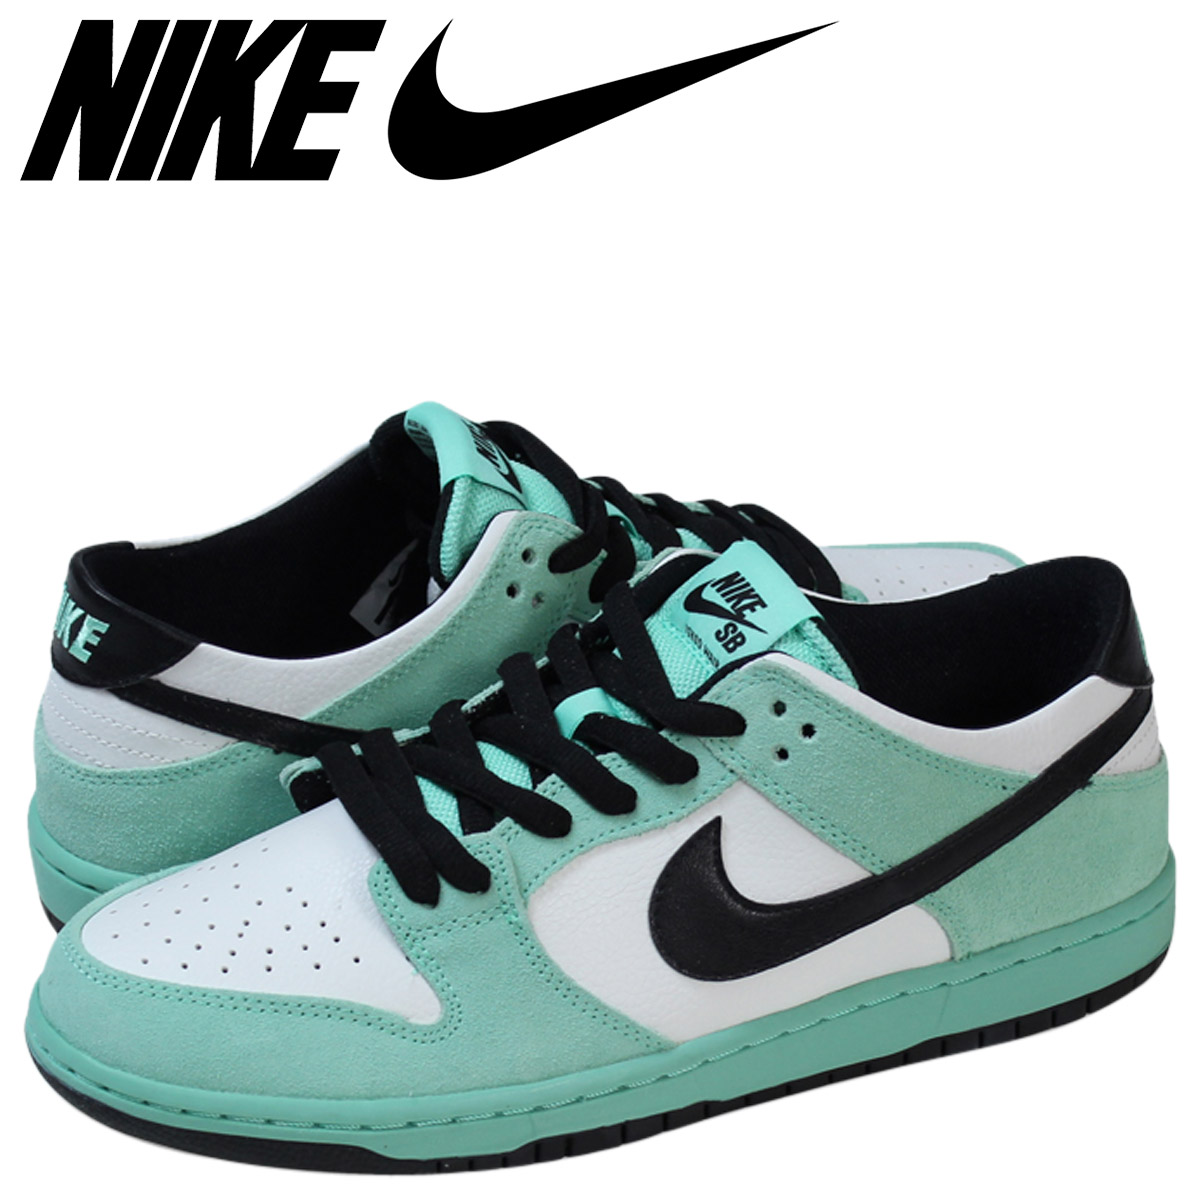 new concept 07bed b0fbb NIKE Nike SB dunk low sneakers DUNK LOW SEA CRYSTAL pro 819,674-301 green  men ...